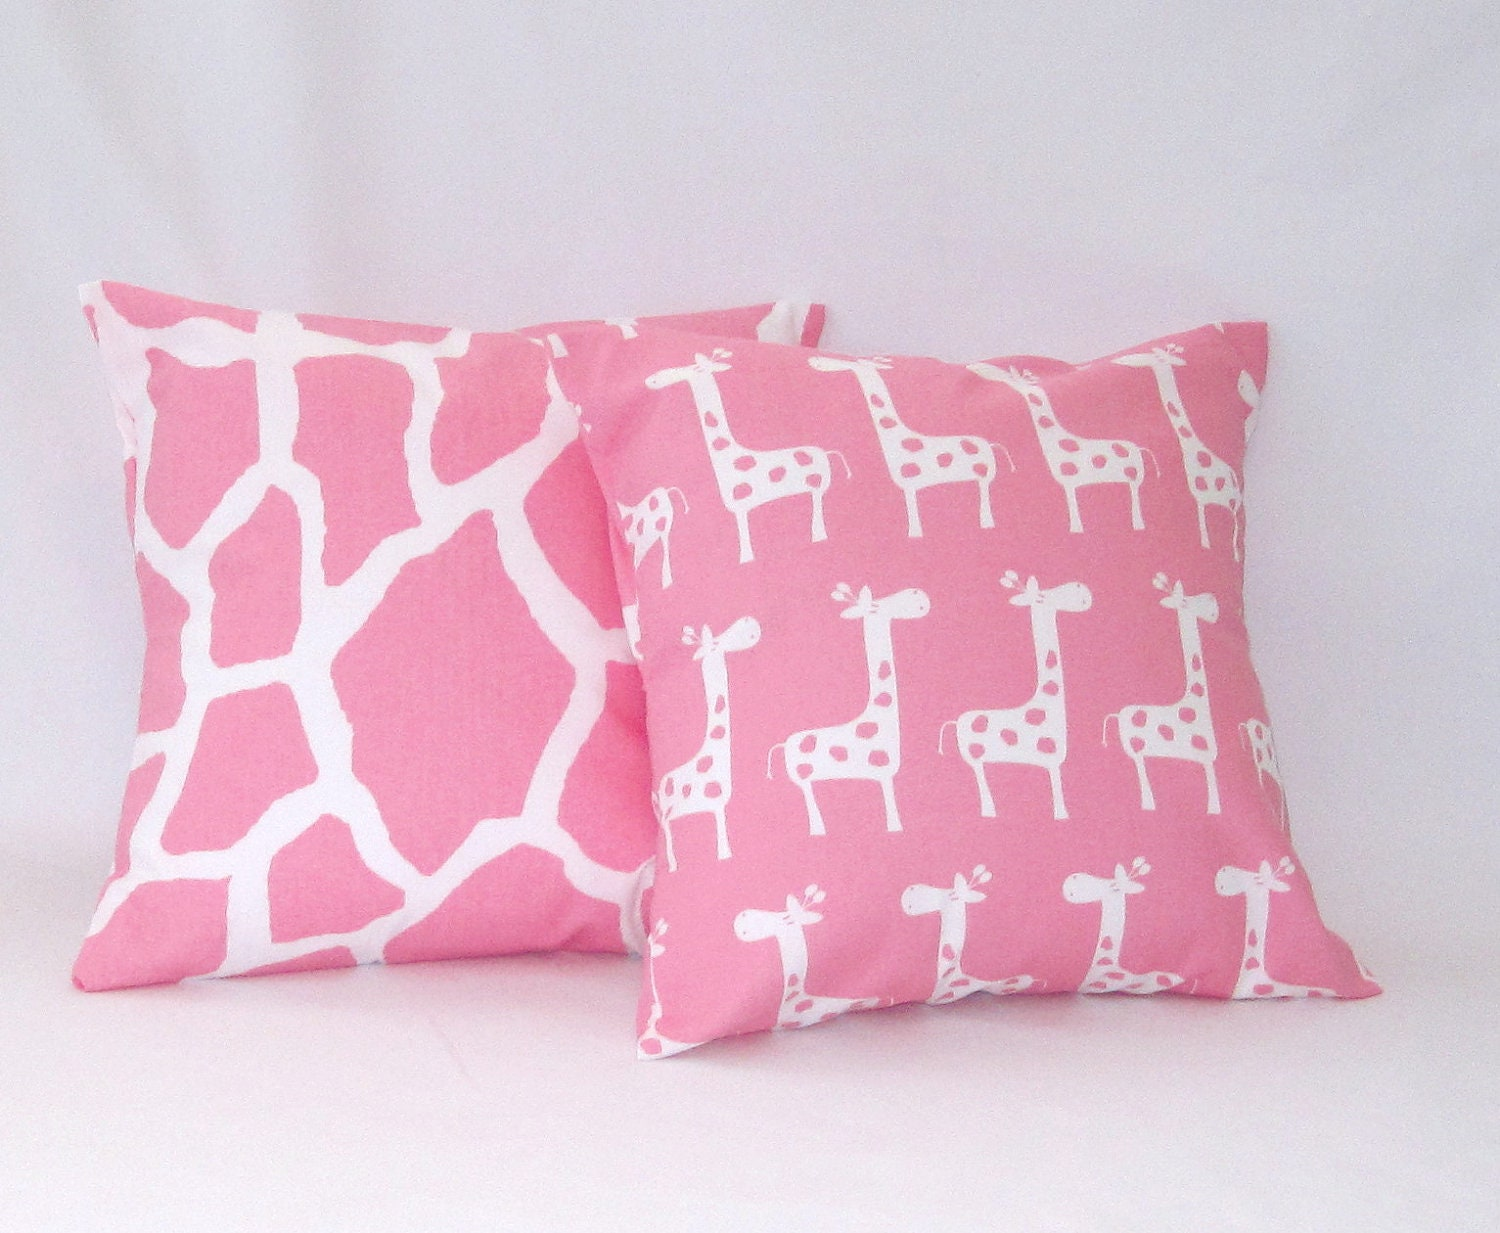 Throw Pillow For Nursery : Pillow CoversPillows Baby Nursery Baby Girl Pink by PillowsByJanet